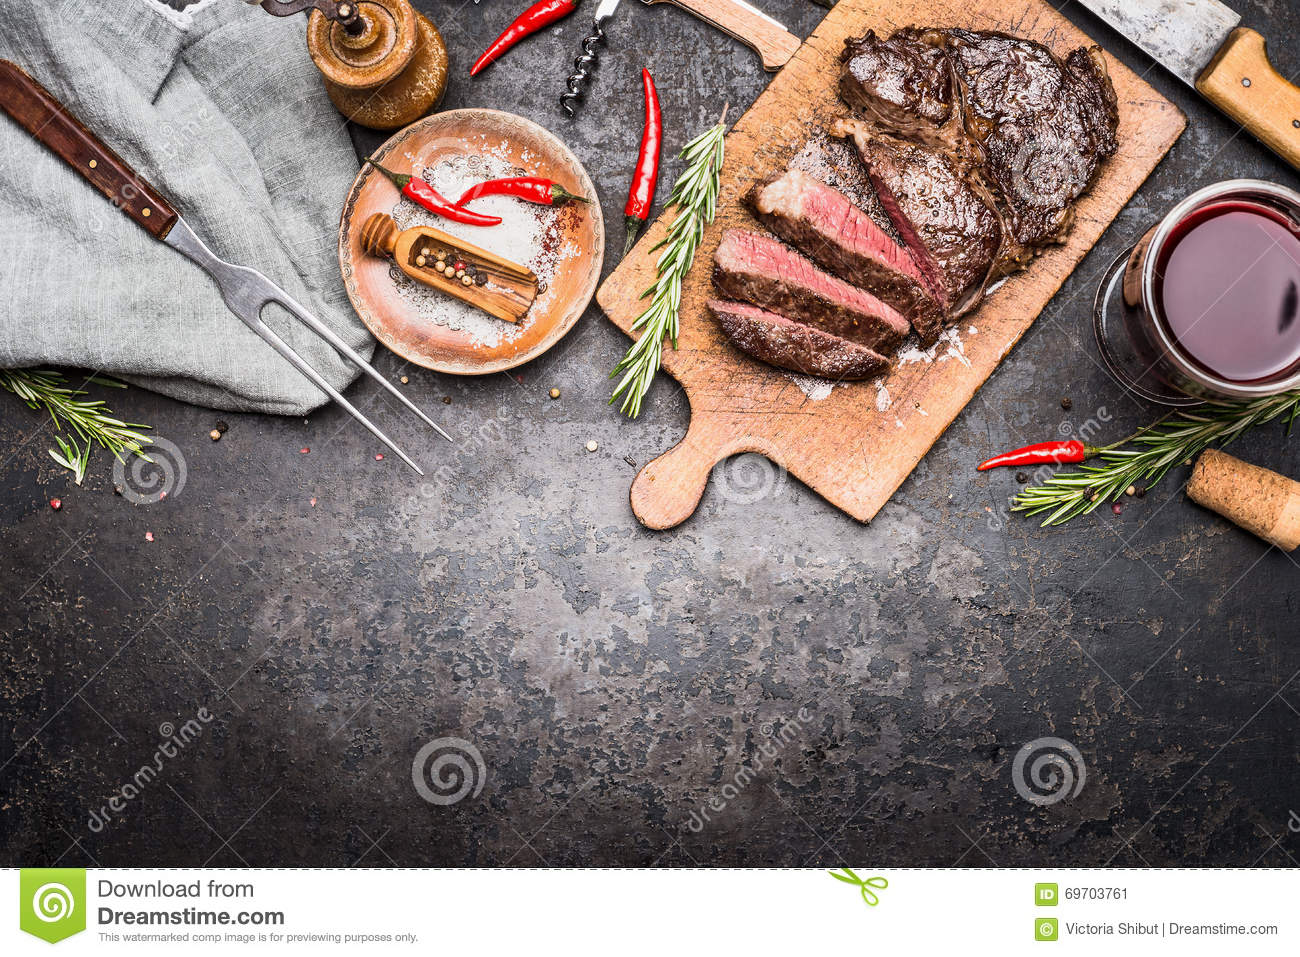 Roasted sliced grill steak on wooden cutting board with wine, seasoning and meat fork on dark vintage metal background, top view